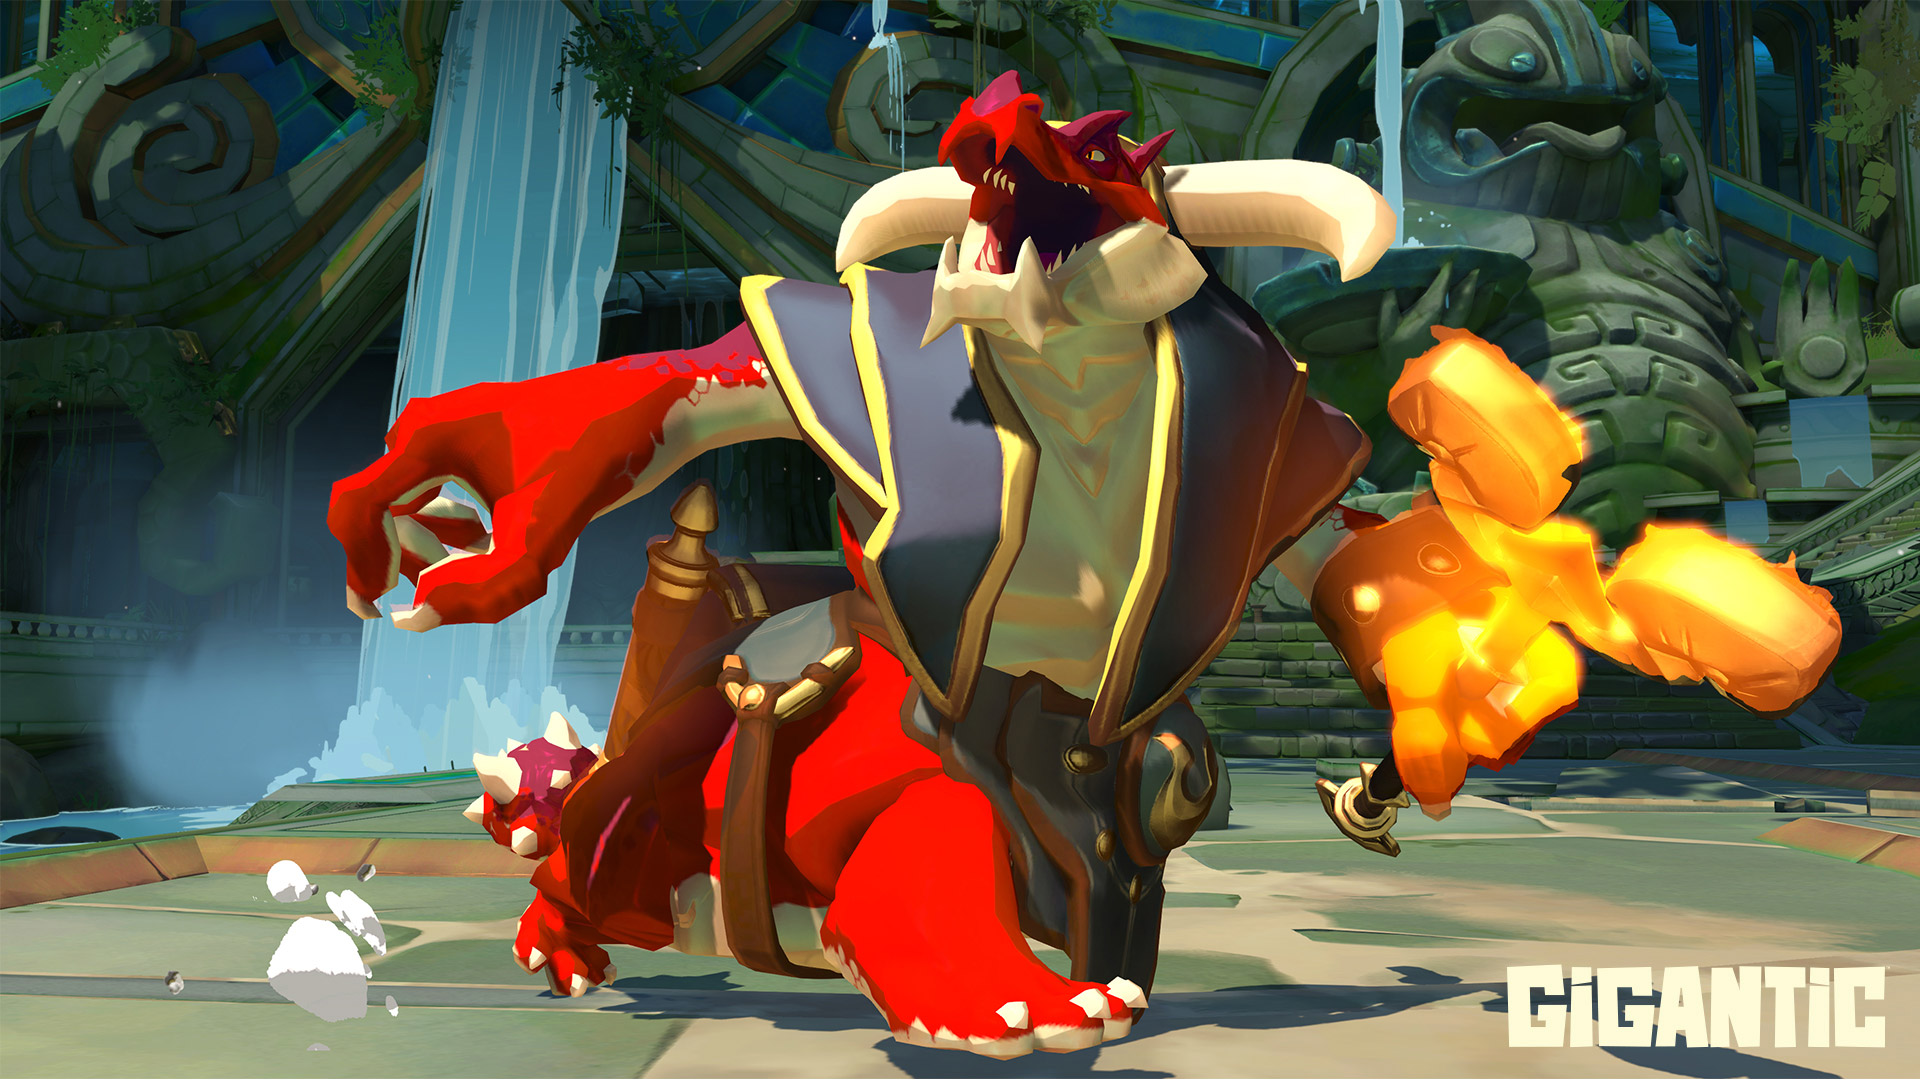 Gigantic is officially set for a July 20 release screenshot